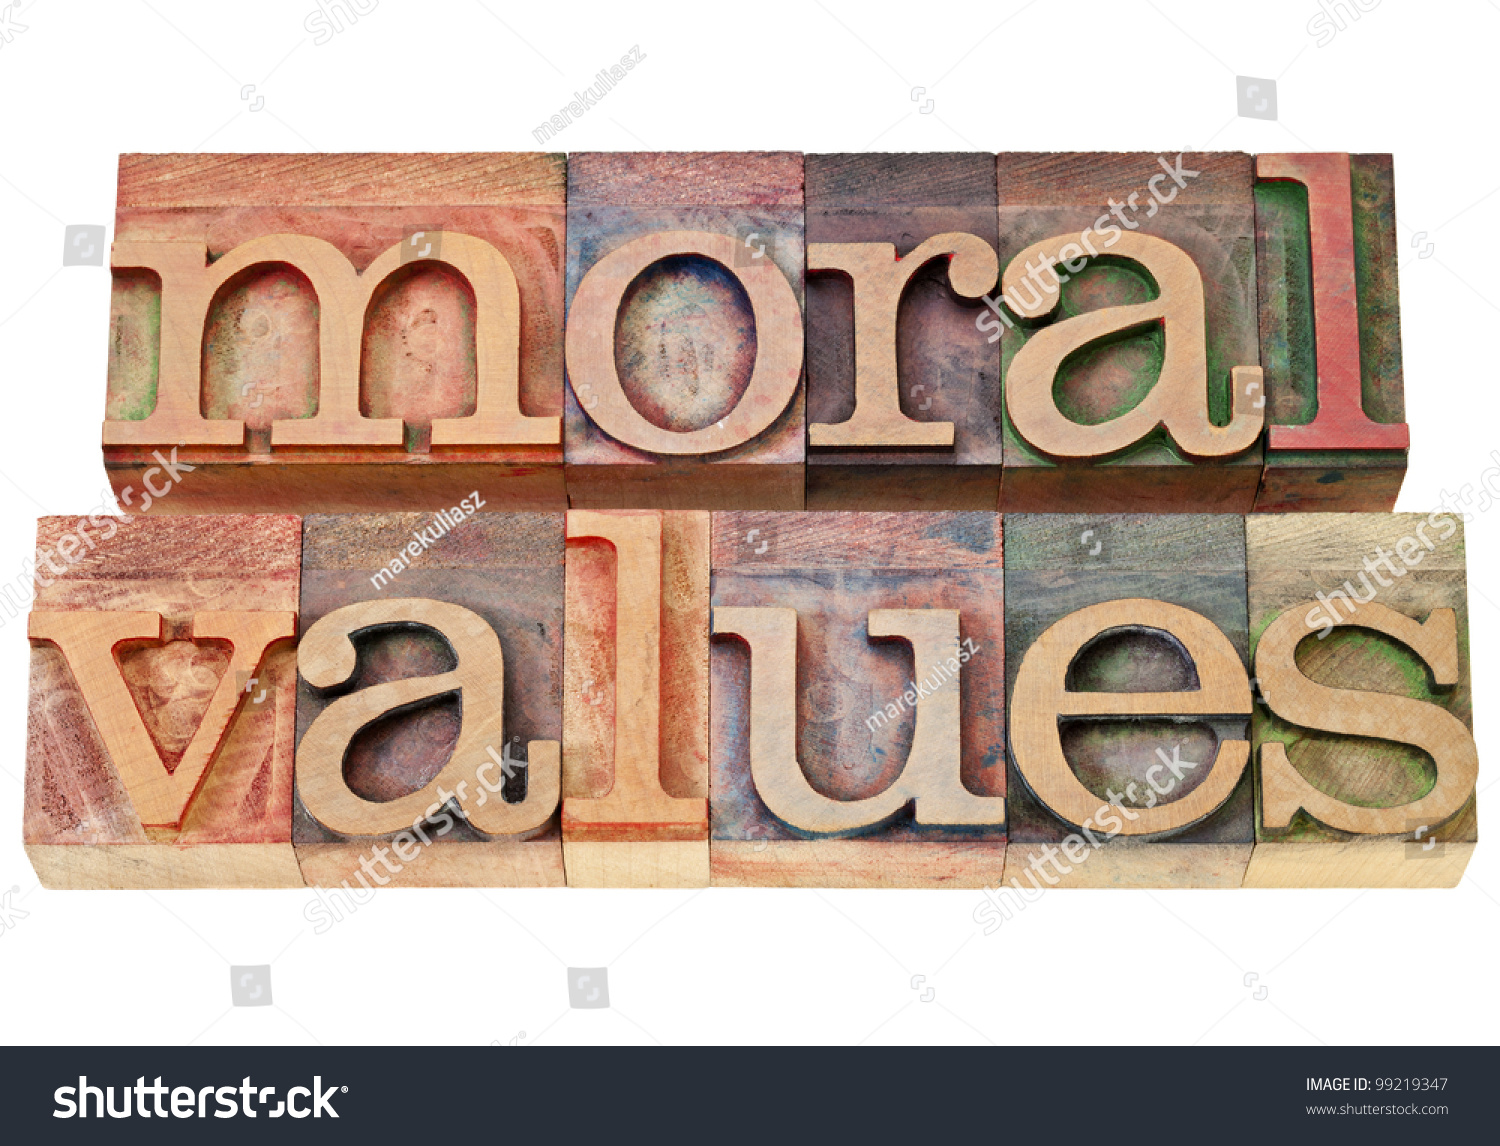 what are the moral values important in life 91 121 113 106 what are the moral values important in life